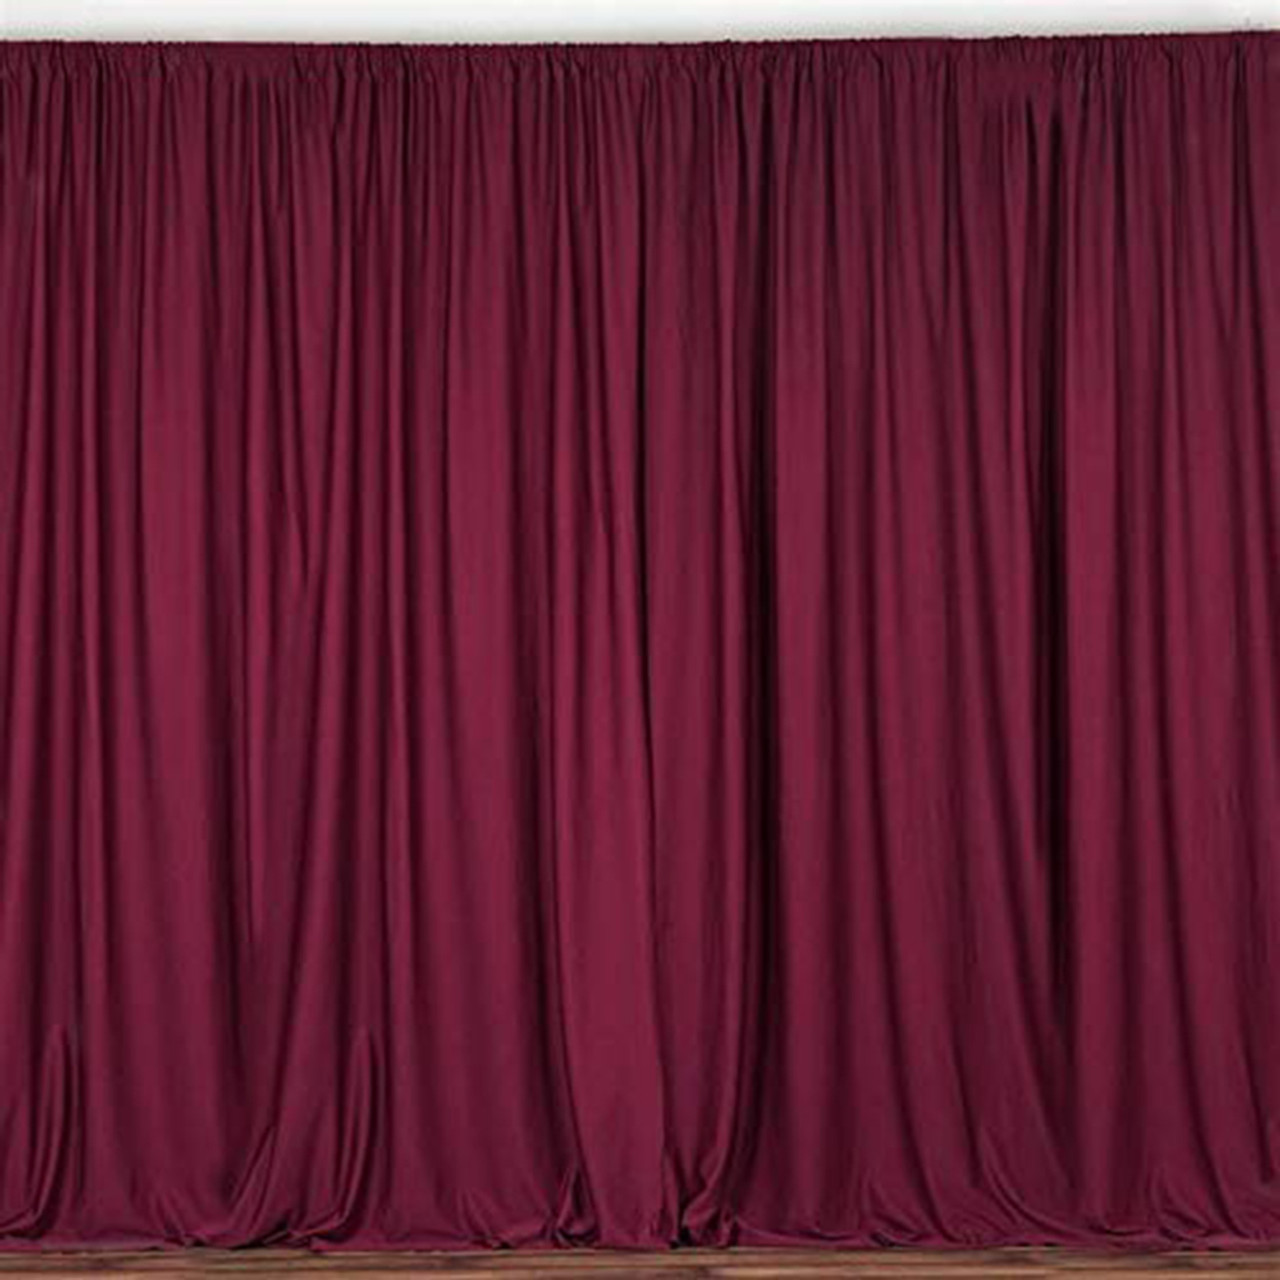 2 pack 10 feet polyester backdrop drapes curtains panels with rod pockets wedding ceremony party home window decorations burgundy